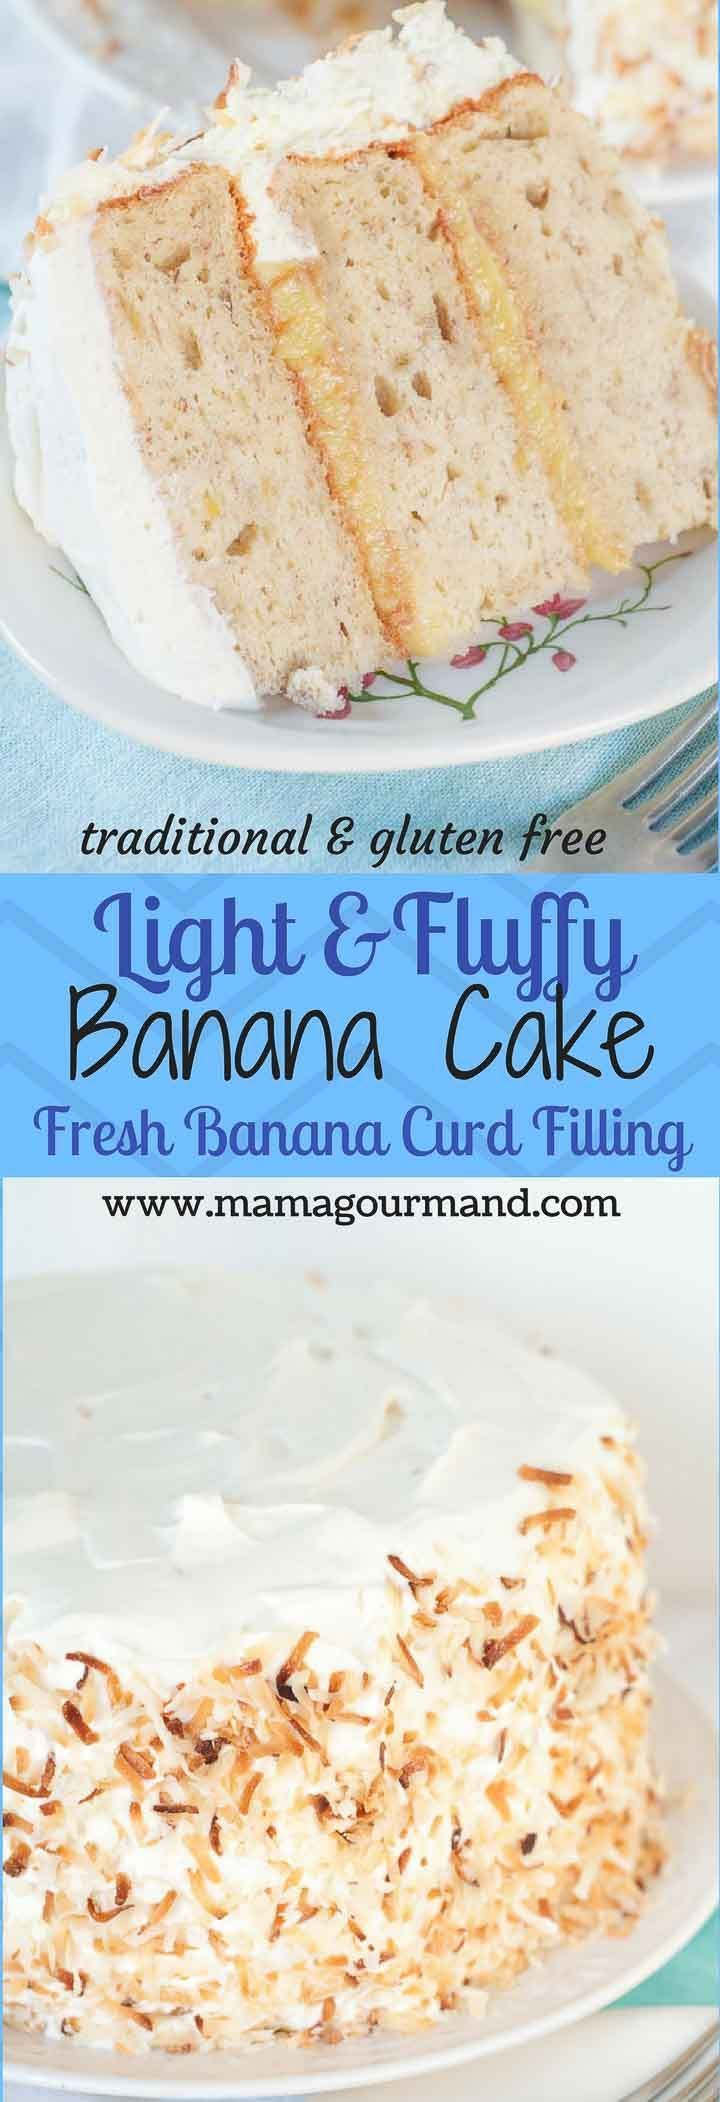 Light, Fluffy Banana Cake with Fresh Banana Curd Filling has airy cake layers with a homemade fresh banana curd filling and whipped cream frosting. http://www.mamagourmand.com